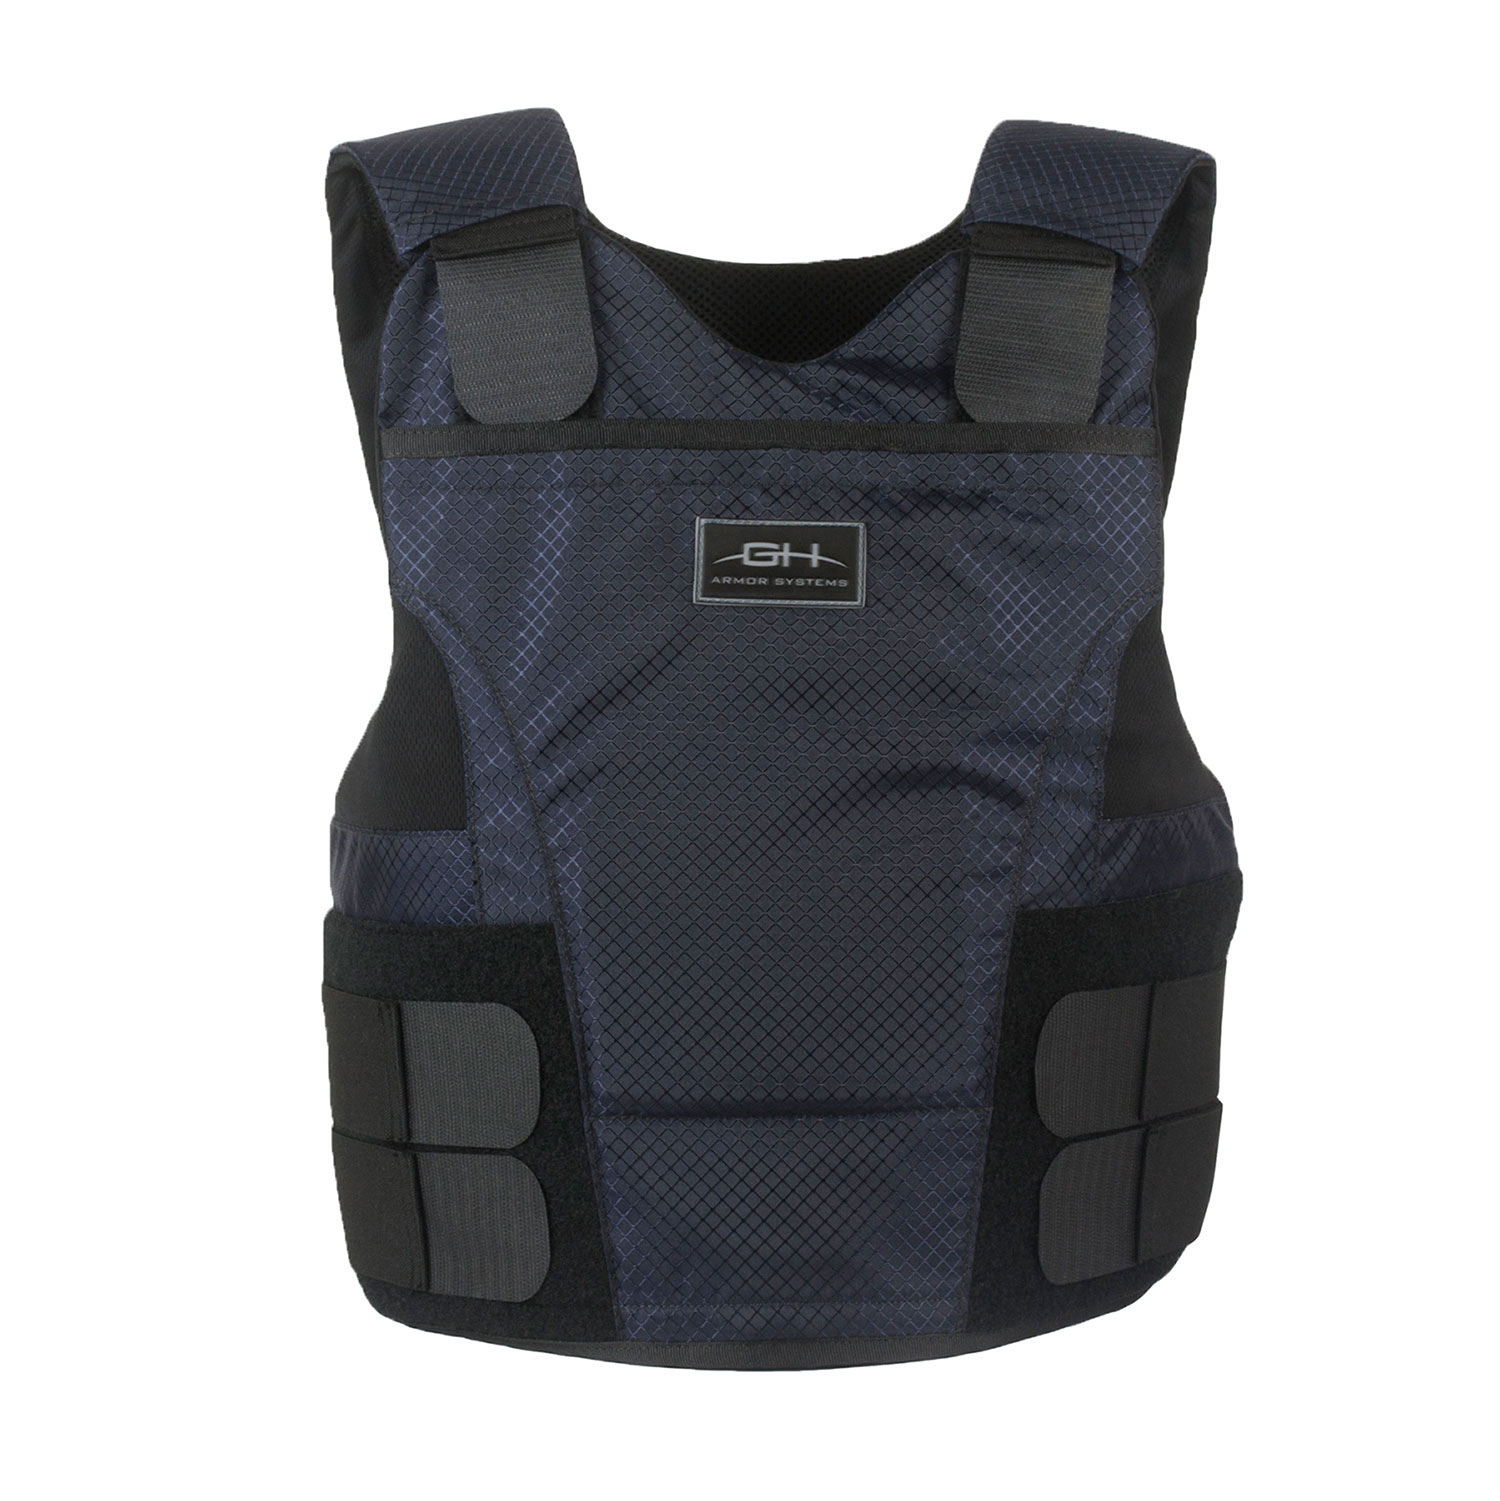 GH Armor Pro Level II Body Armor Package